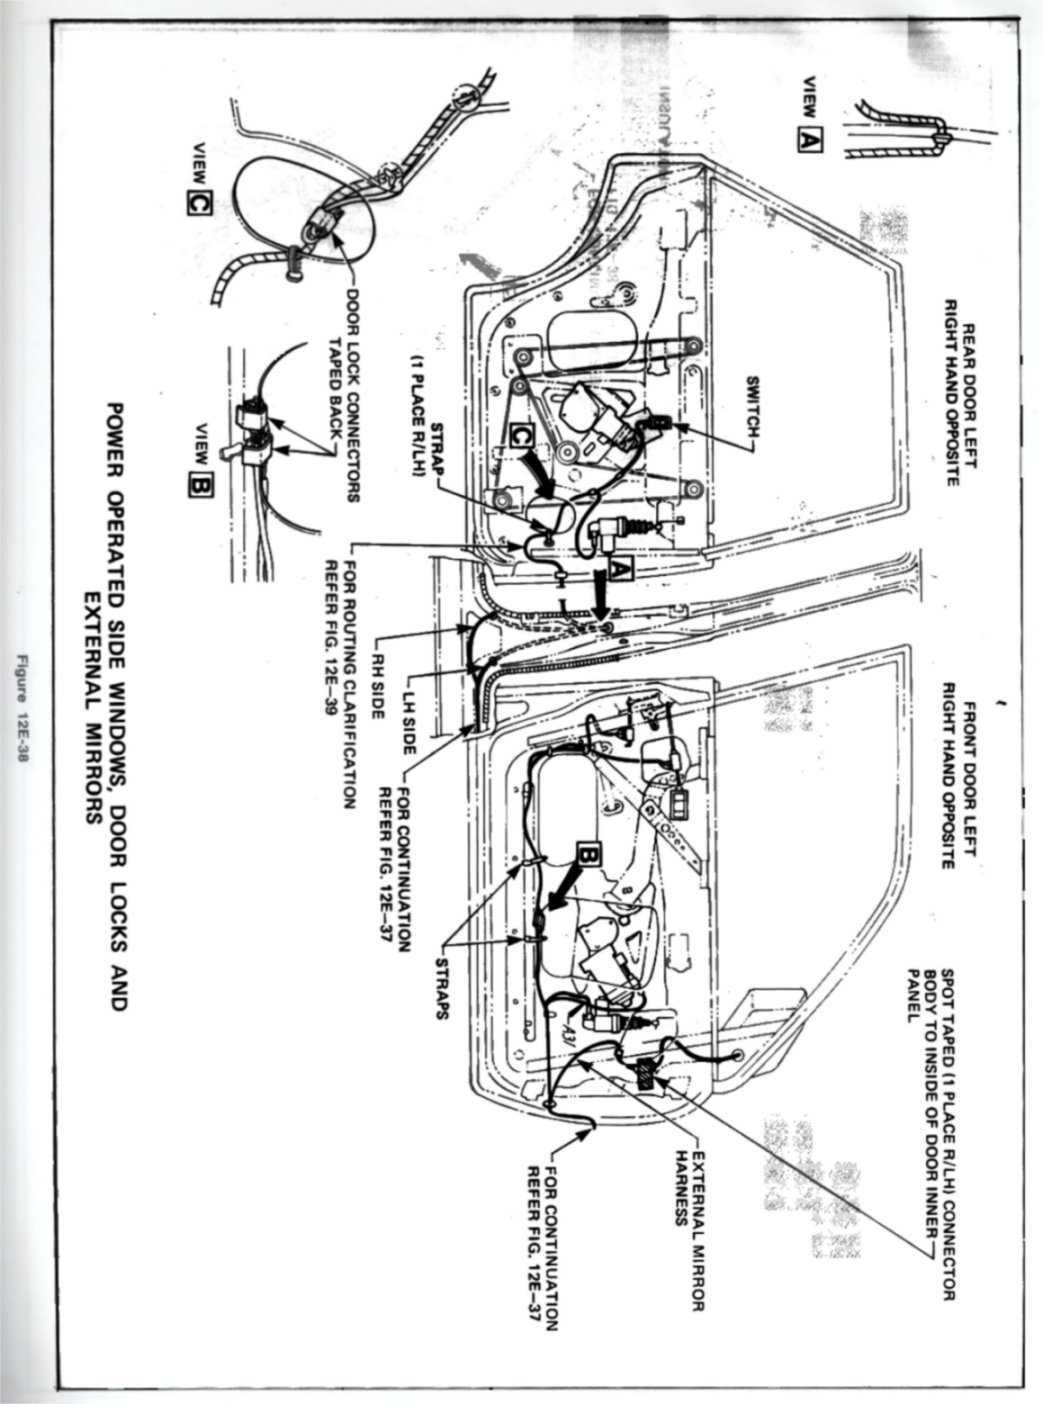 wiring diagram for aftermarket power windows air conditioner dvd 2006 ford expedition